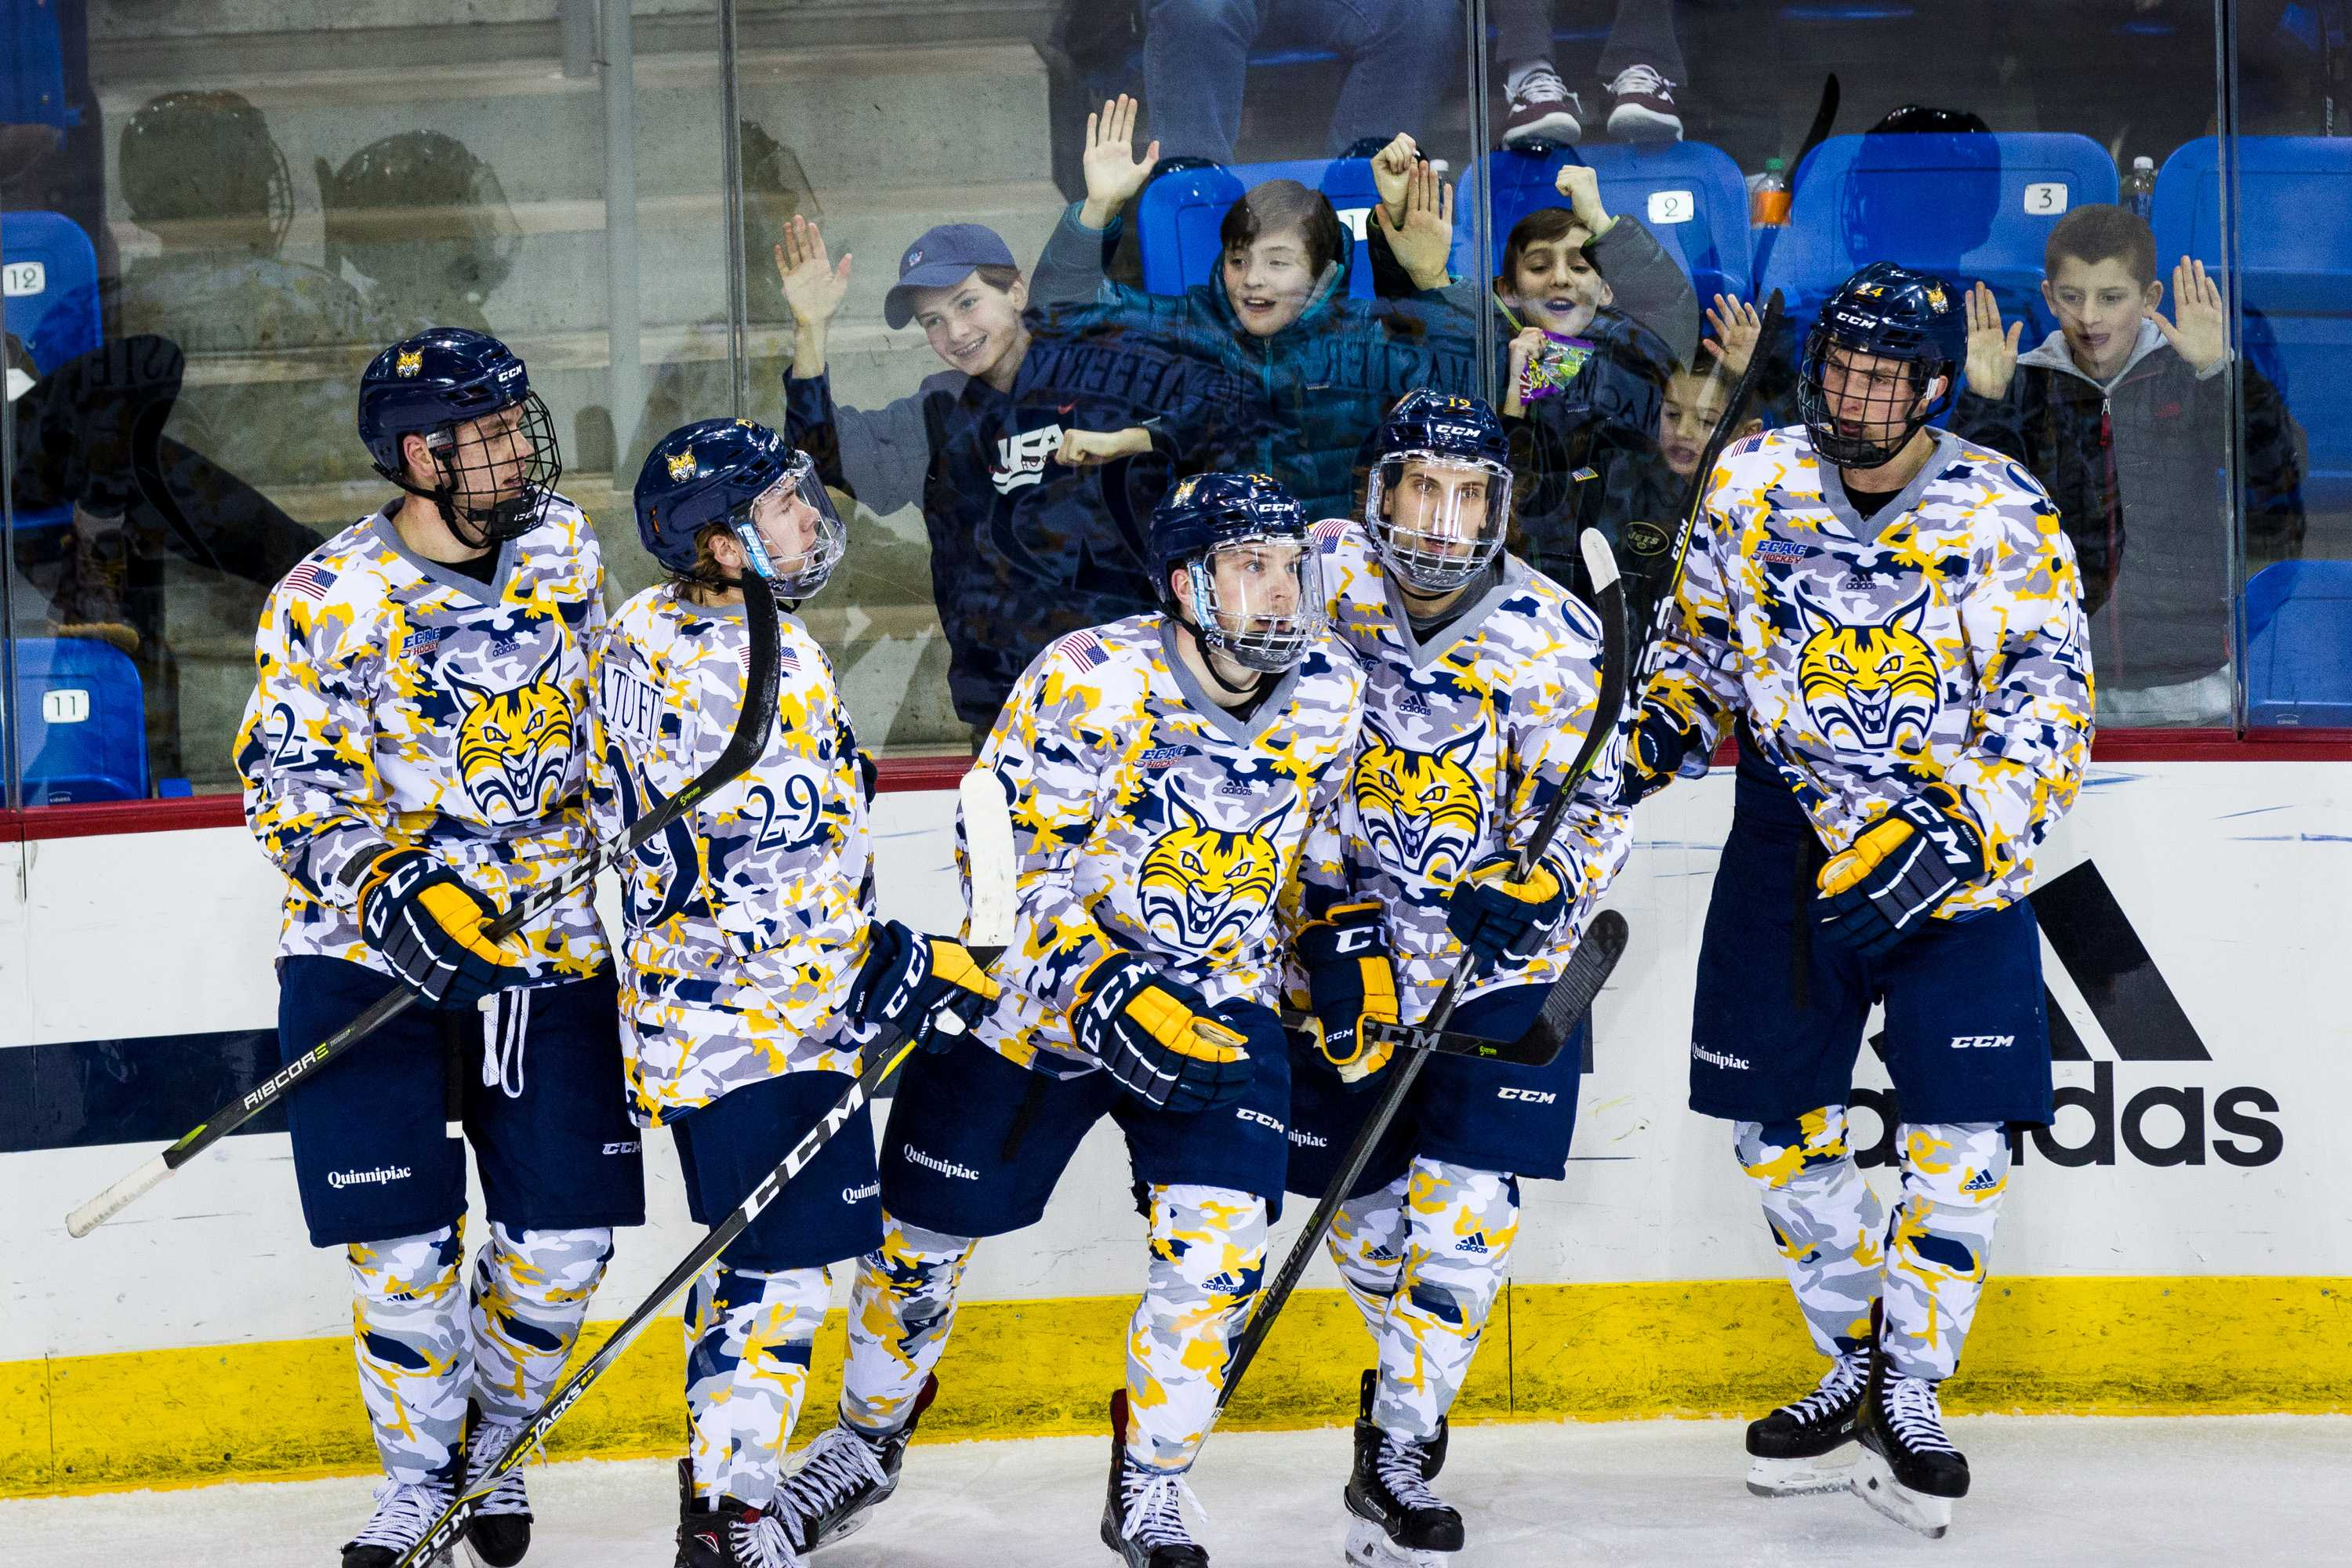 Quinnipiac men's ice hockey beats St. Lawrence 5-2, sweeps weekend